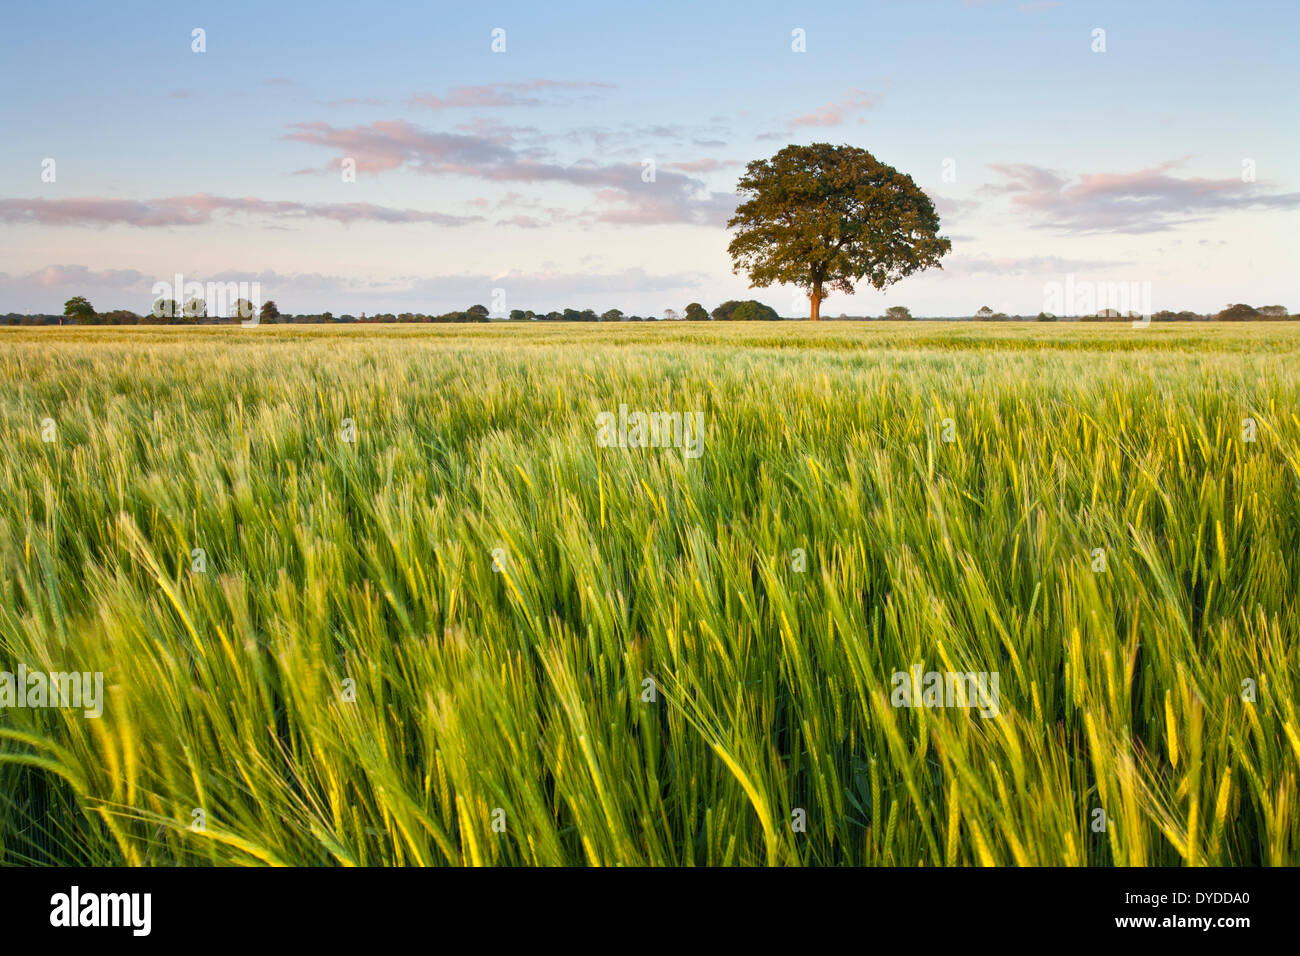 A barley field in the Norfolk countryside close to the village of Potter Heigham. - Stock Image